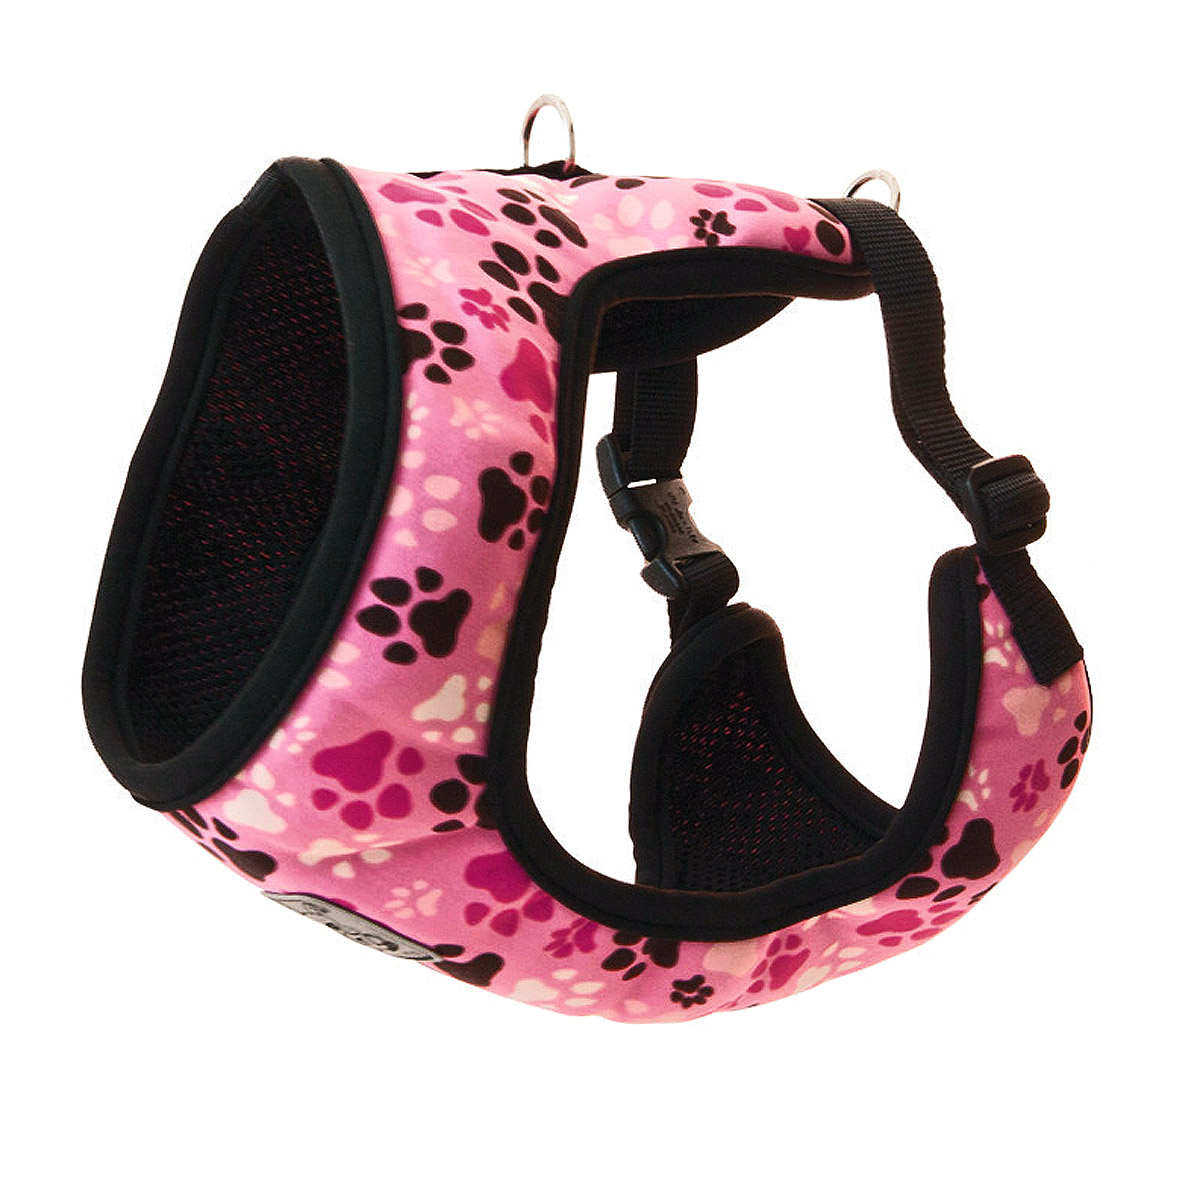 Cirque Dog Harness - Pitter Patter Pink